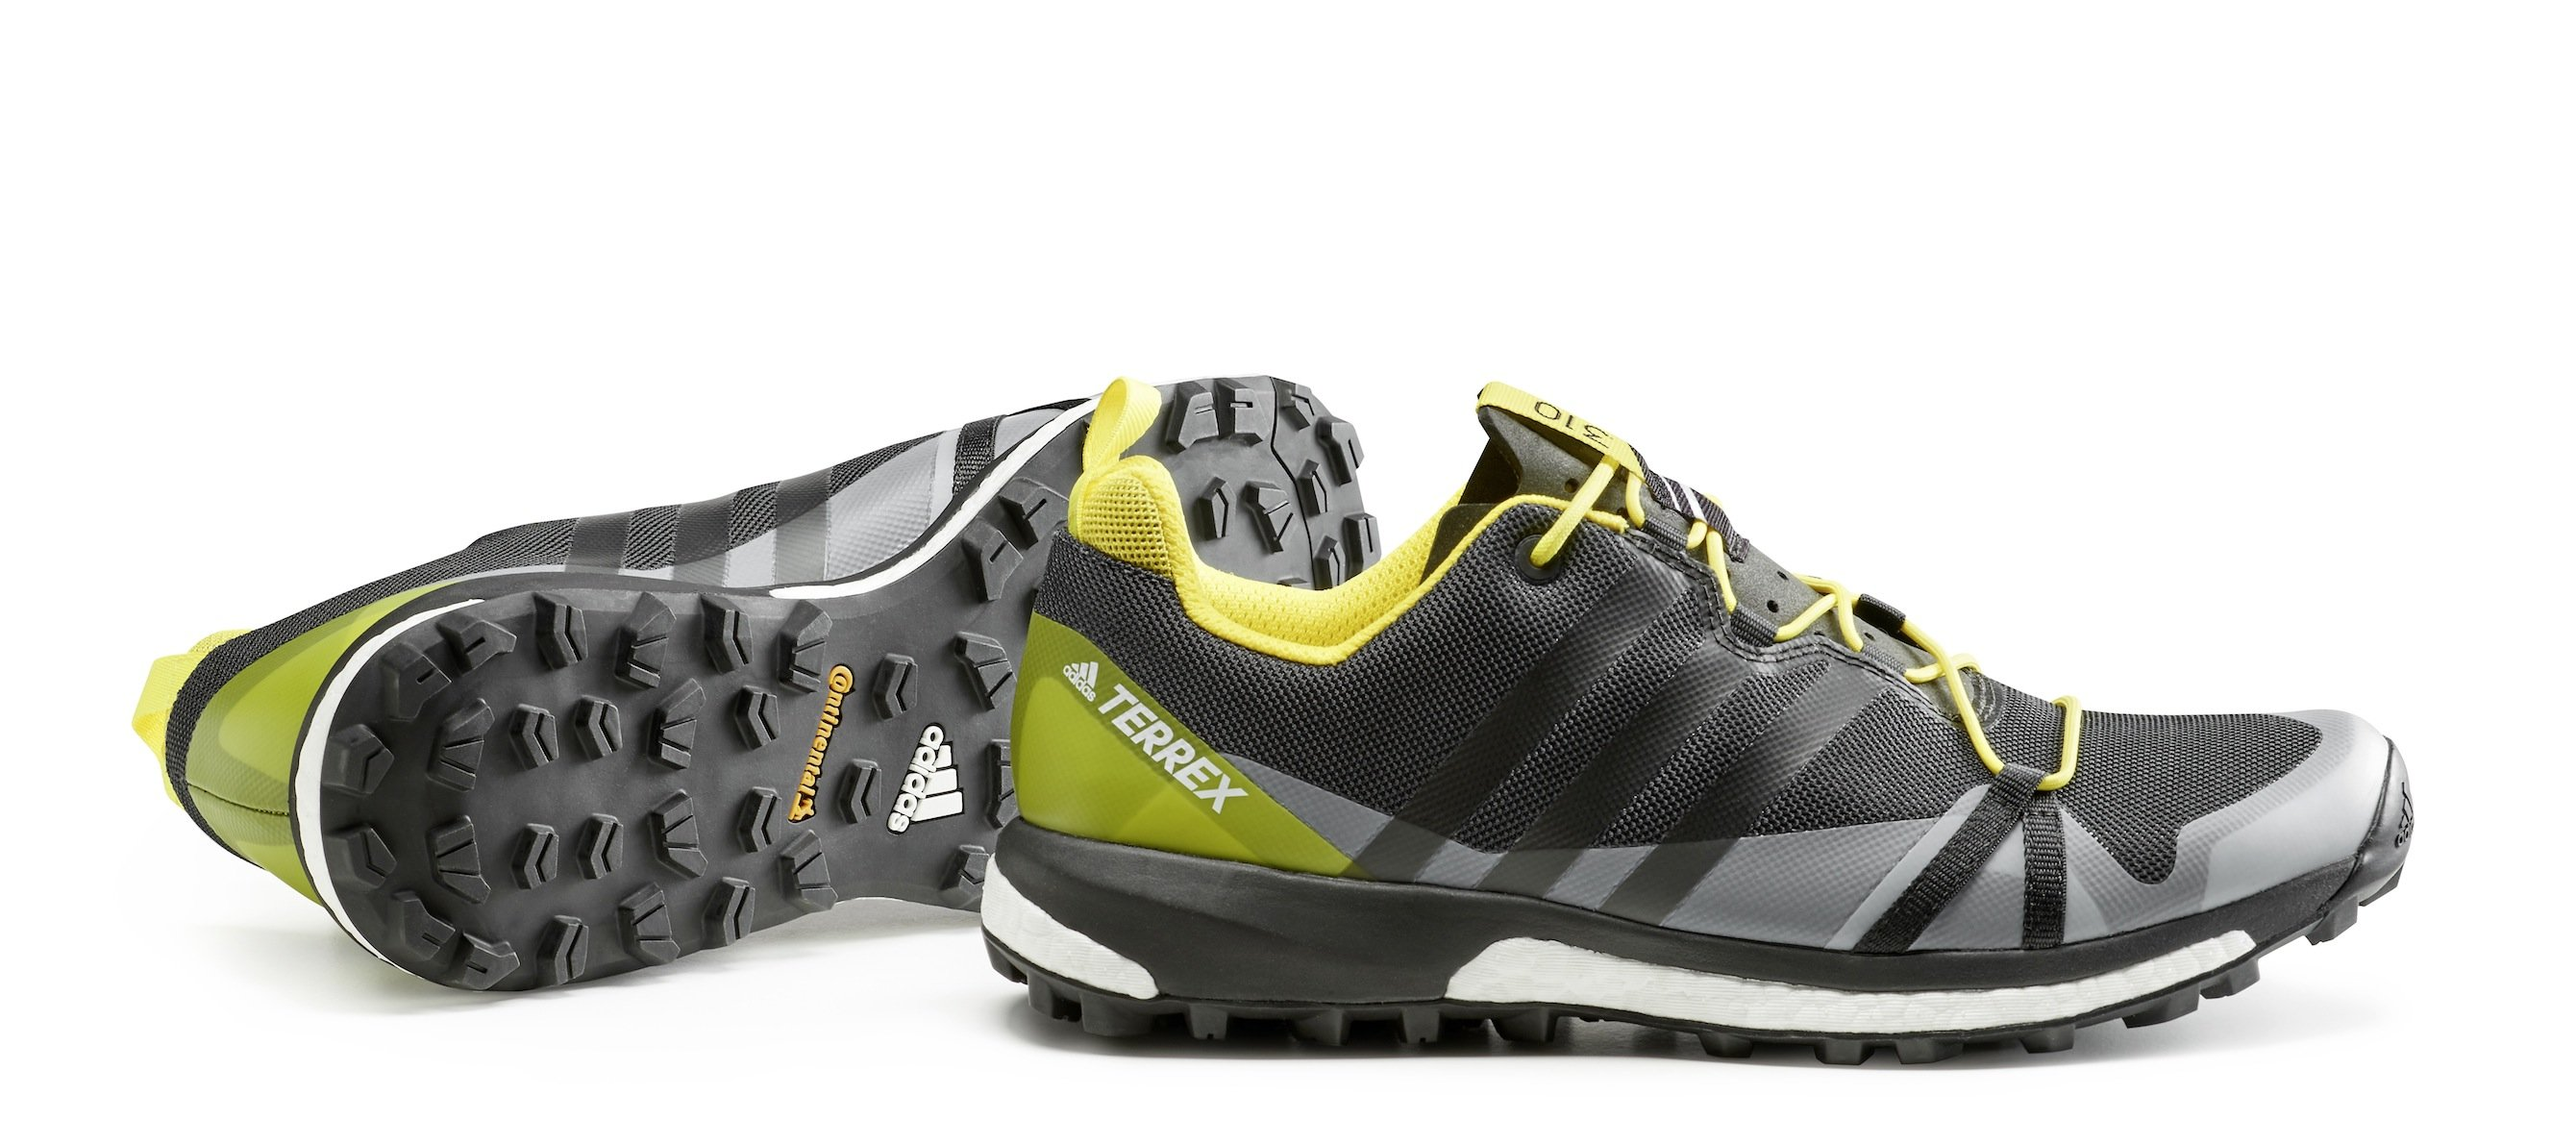 airFreshing_2016_Outdoor_adidas_Outdoor_Agravic_Trailrunningschuh